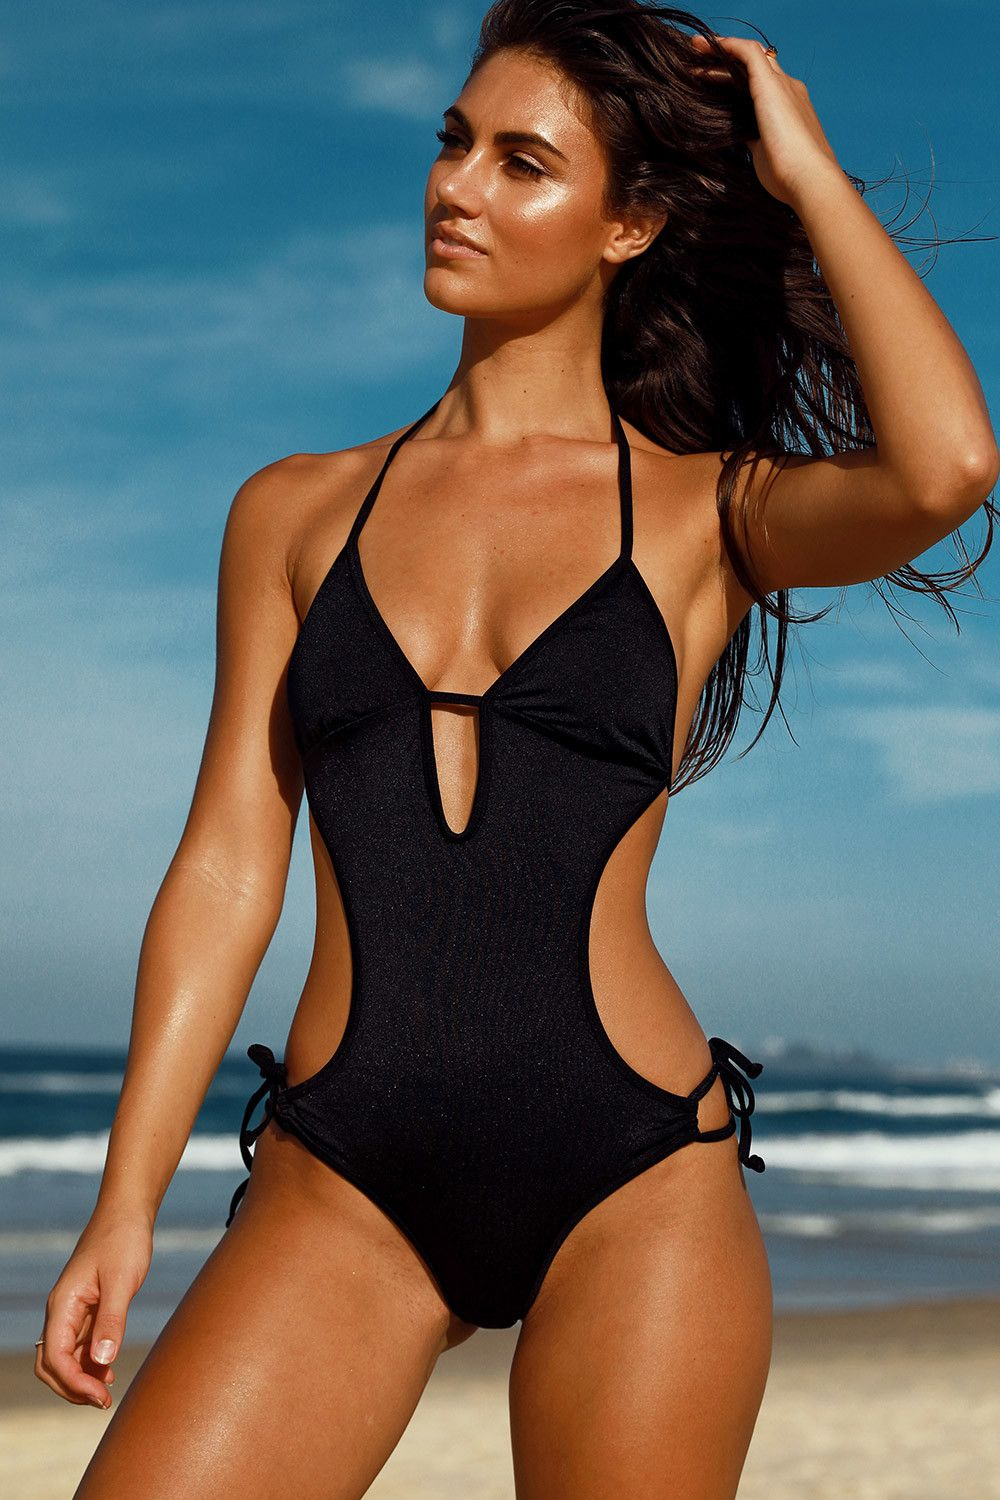 494184d4582d2 Cartagena Black Open Sided Sexy One Piece Bathing Suit | Swimsuit ...